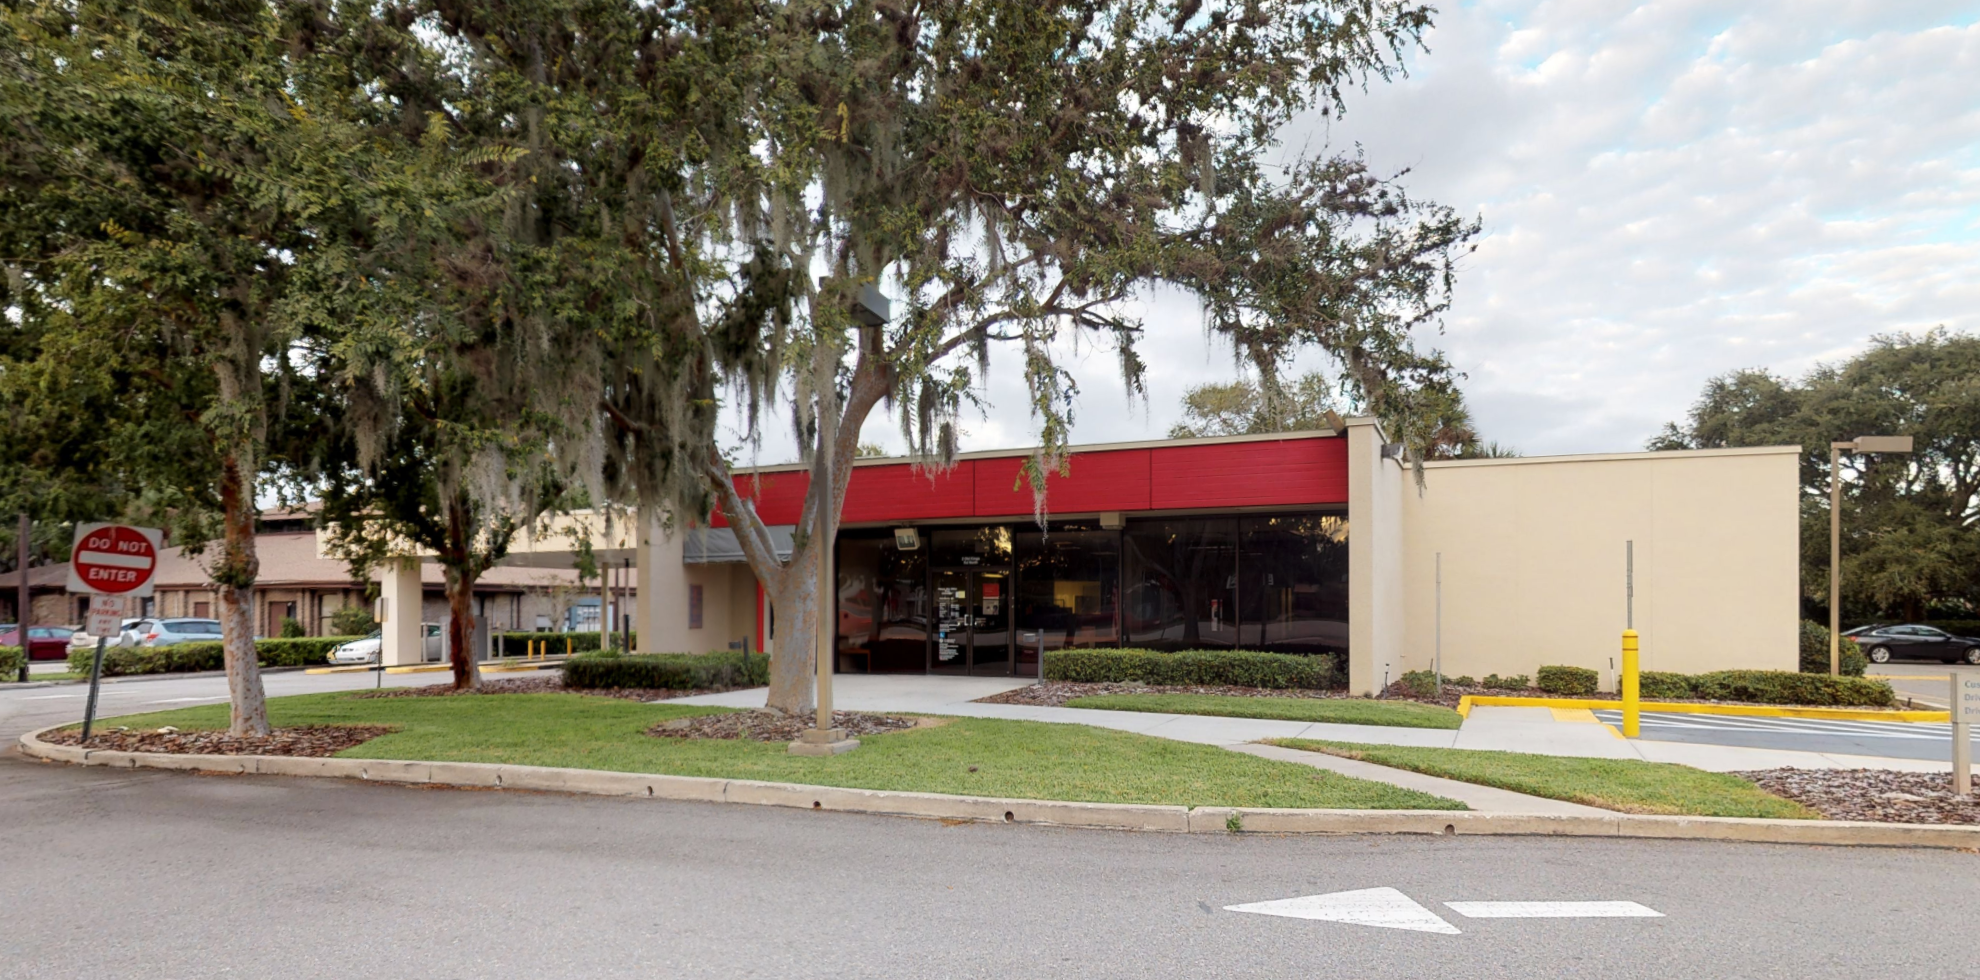 Bank of America financial center with drive-thru ATM | 2 Old Kings Rd N, Palm Coast, FL 32137